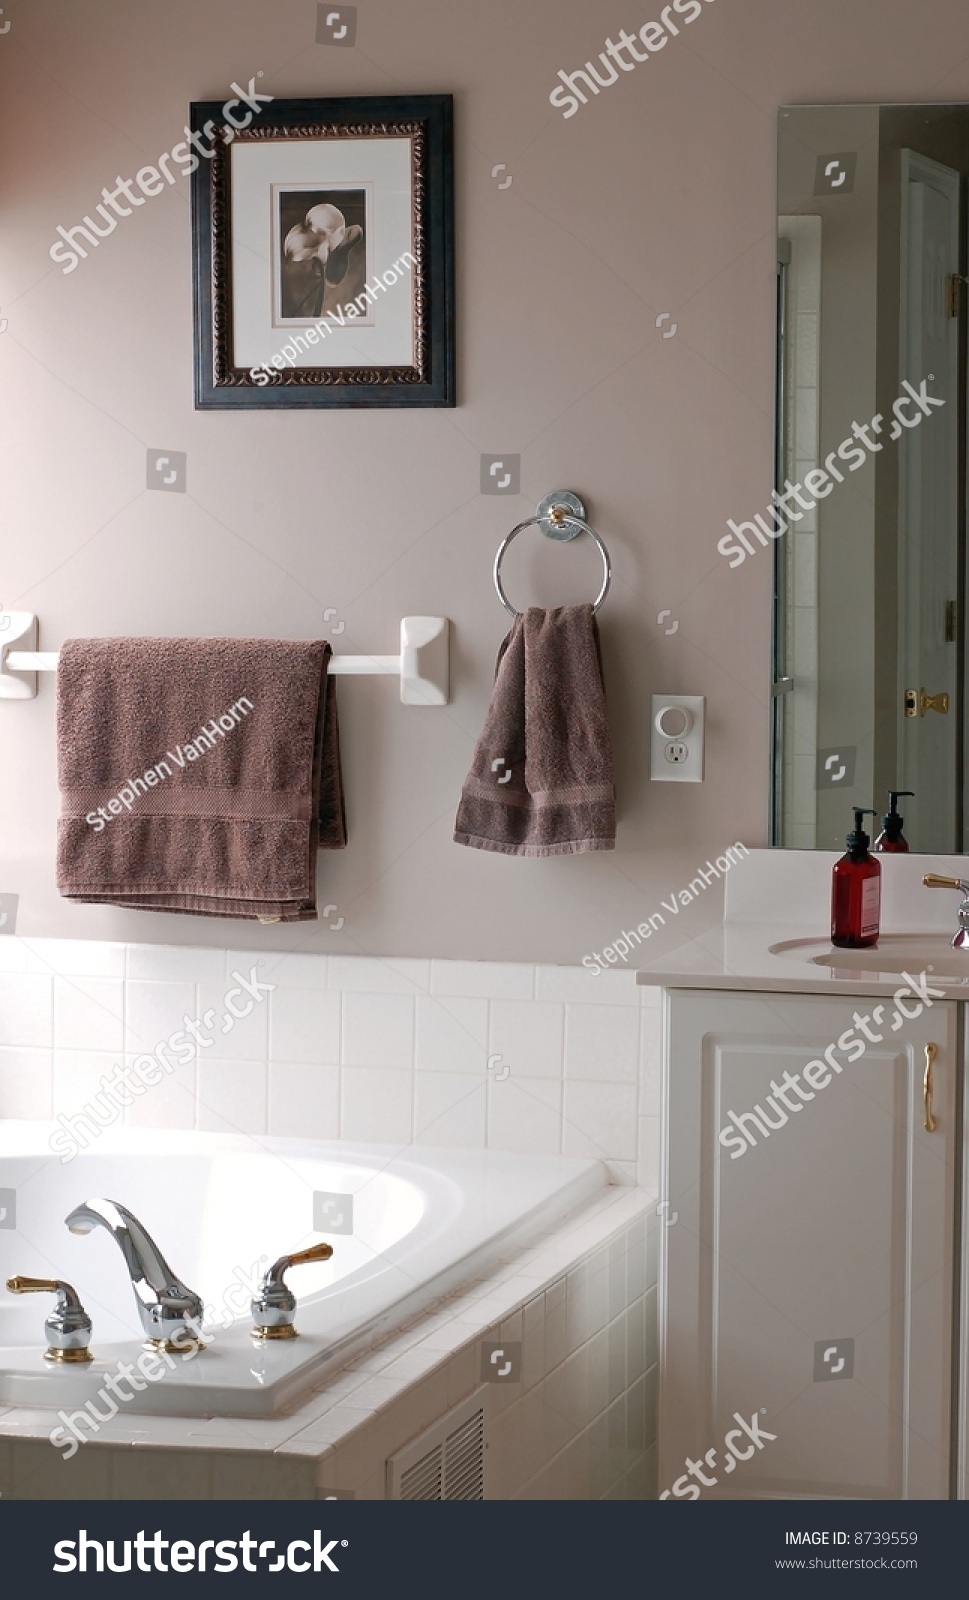 Nicely Decorated Bathroom In A Luxury Home Stock Photo. Conference Room Chairs. Home Decorating Store. Decorations For Living Room. Swivel Glider Chairs Living Room. Wedding Shower Decor. Marshalls Home Decor. Cute Baby Rooms. Window Mirrors Decorative